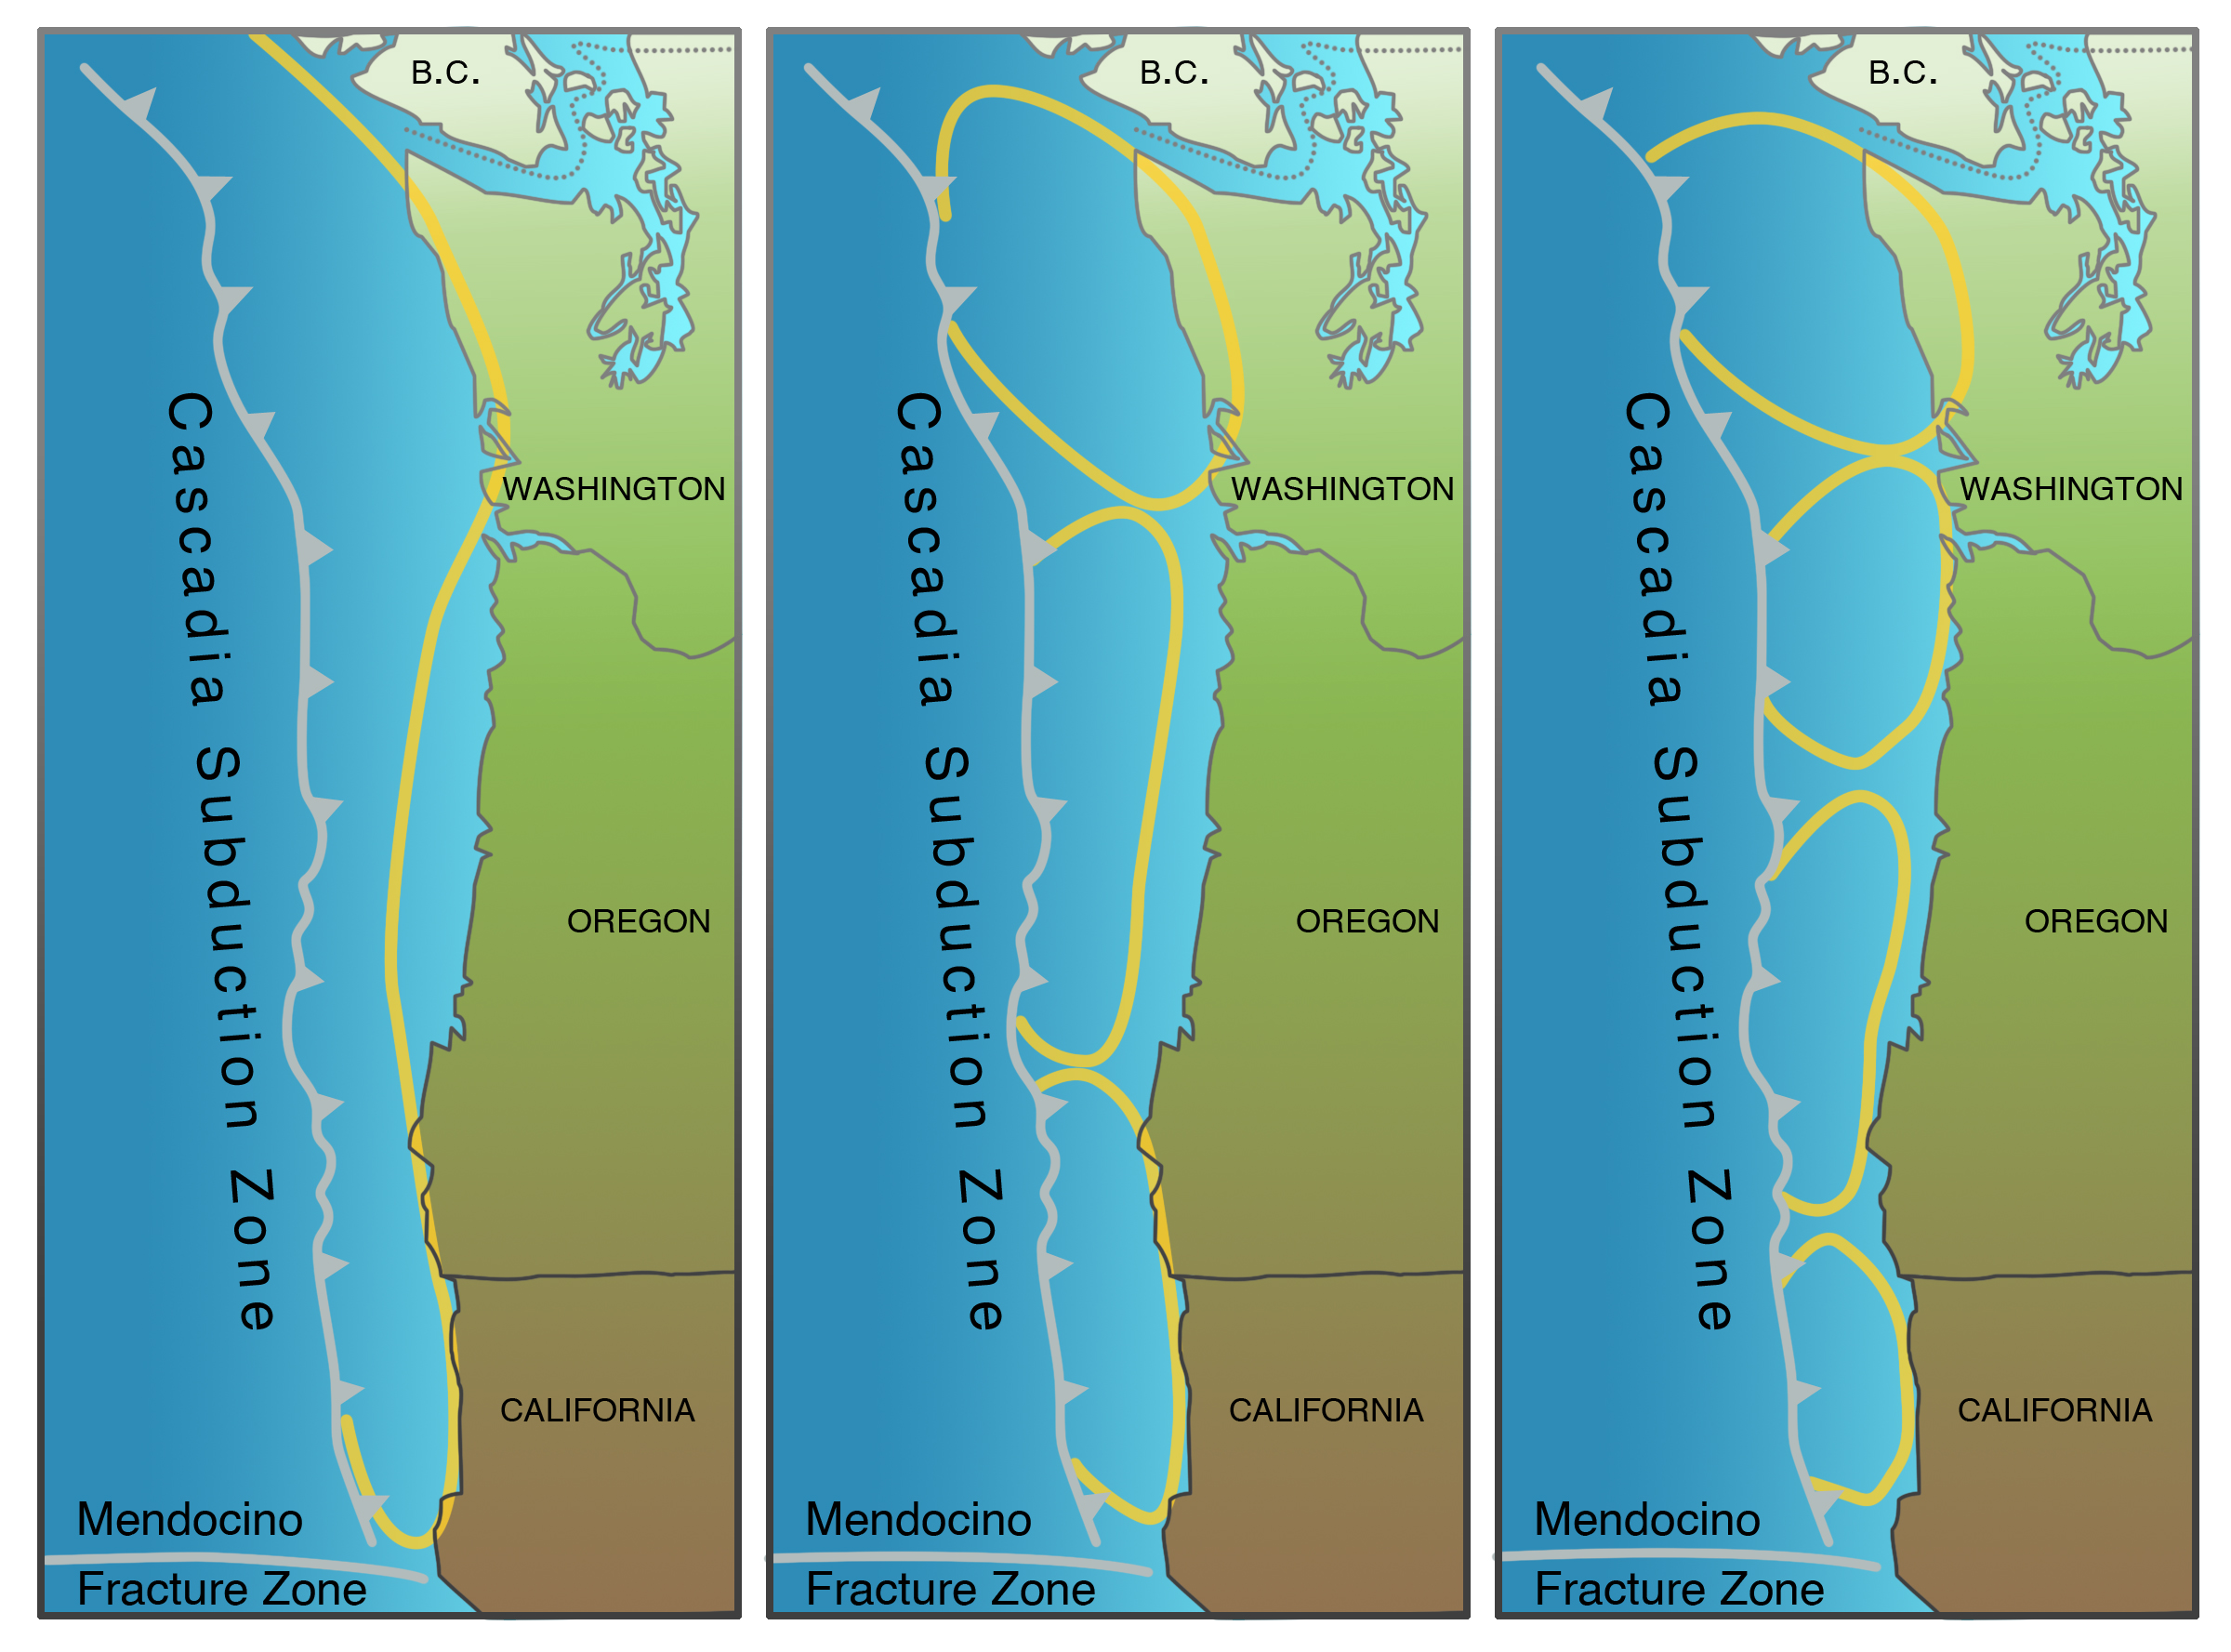 The deterministic choices for the maximum considered earthquake on the Cascadia Subduction Zone.